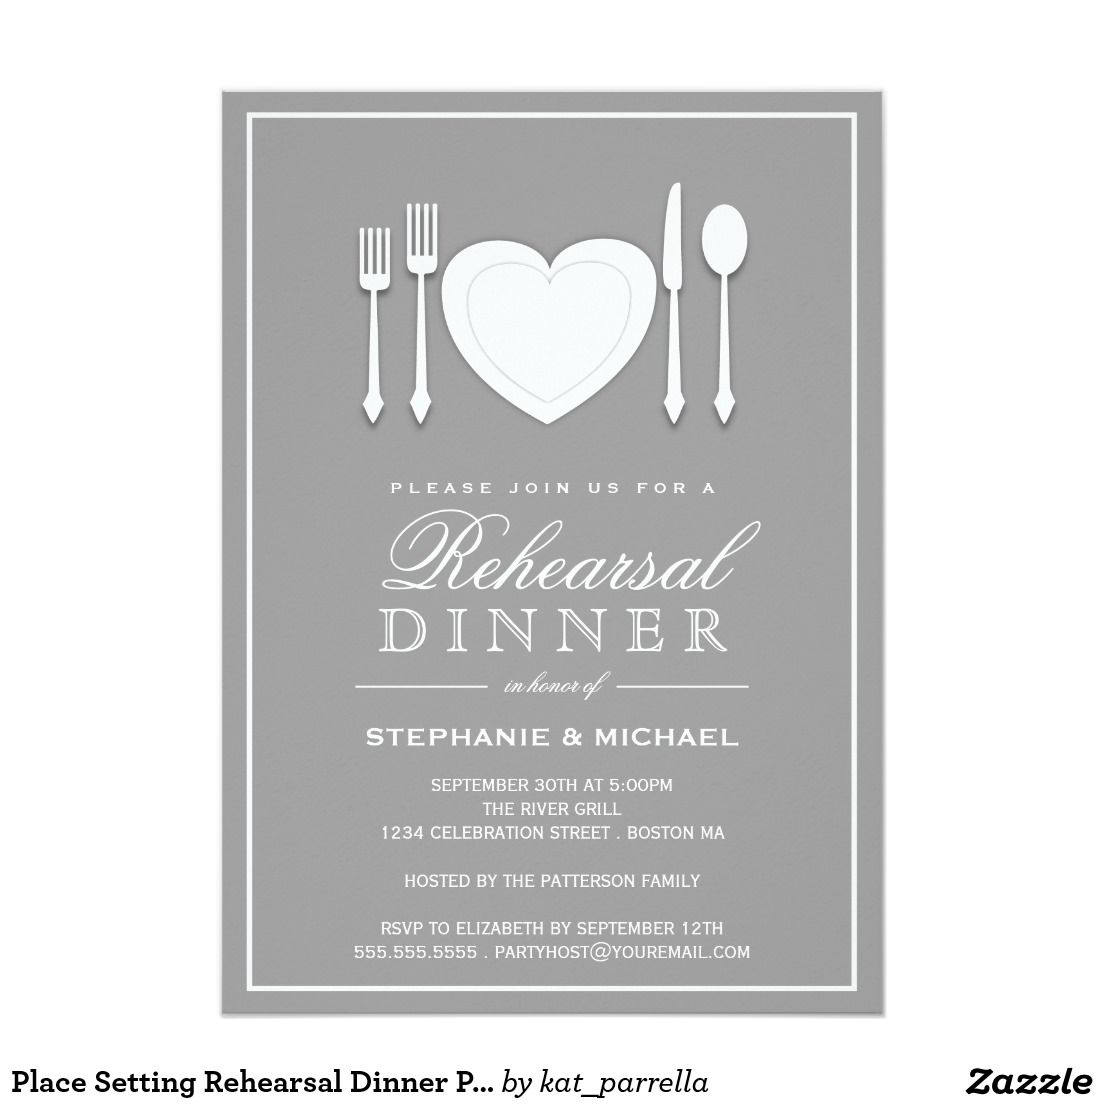 Place Setting Rehearsal Dinner Party Invitation Rehersal Dinner